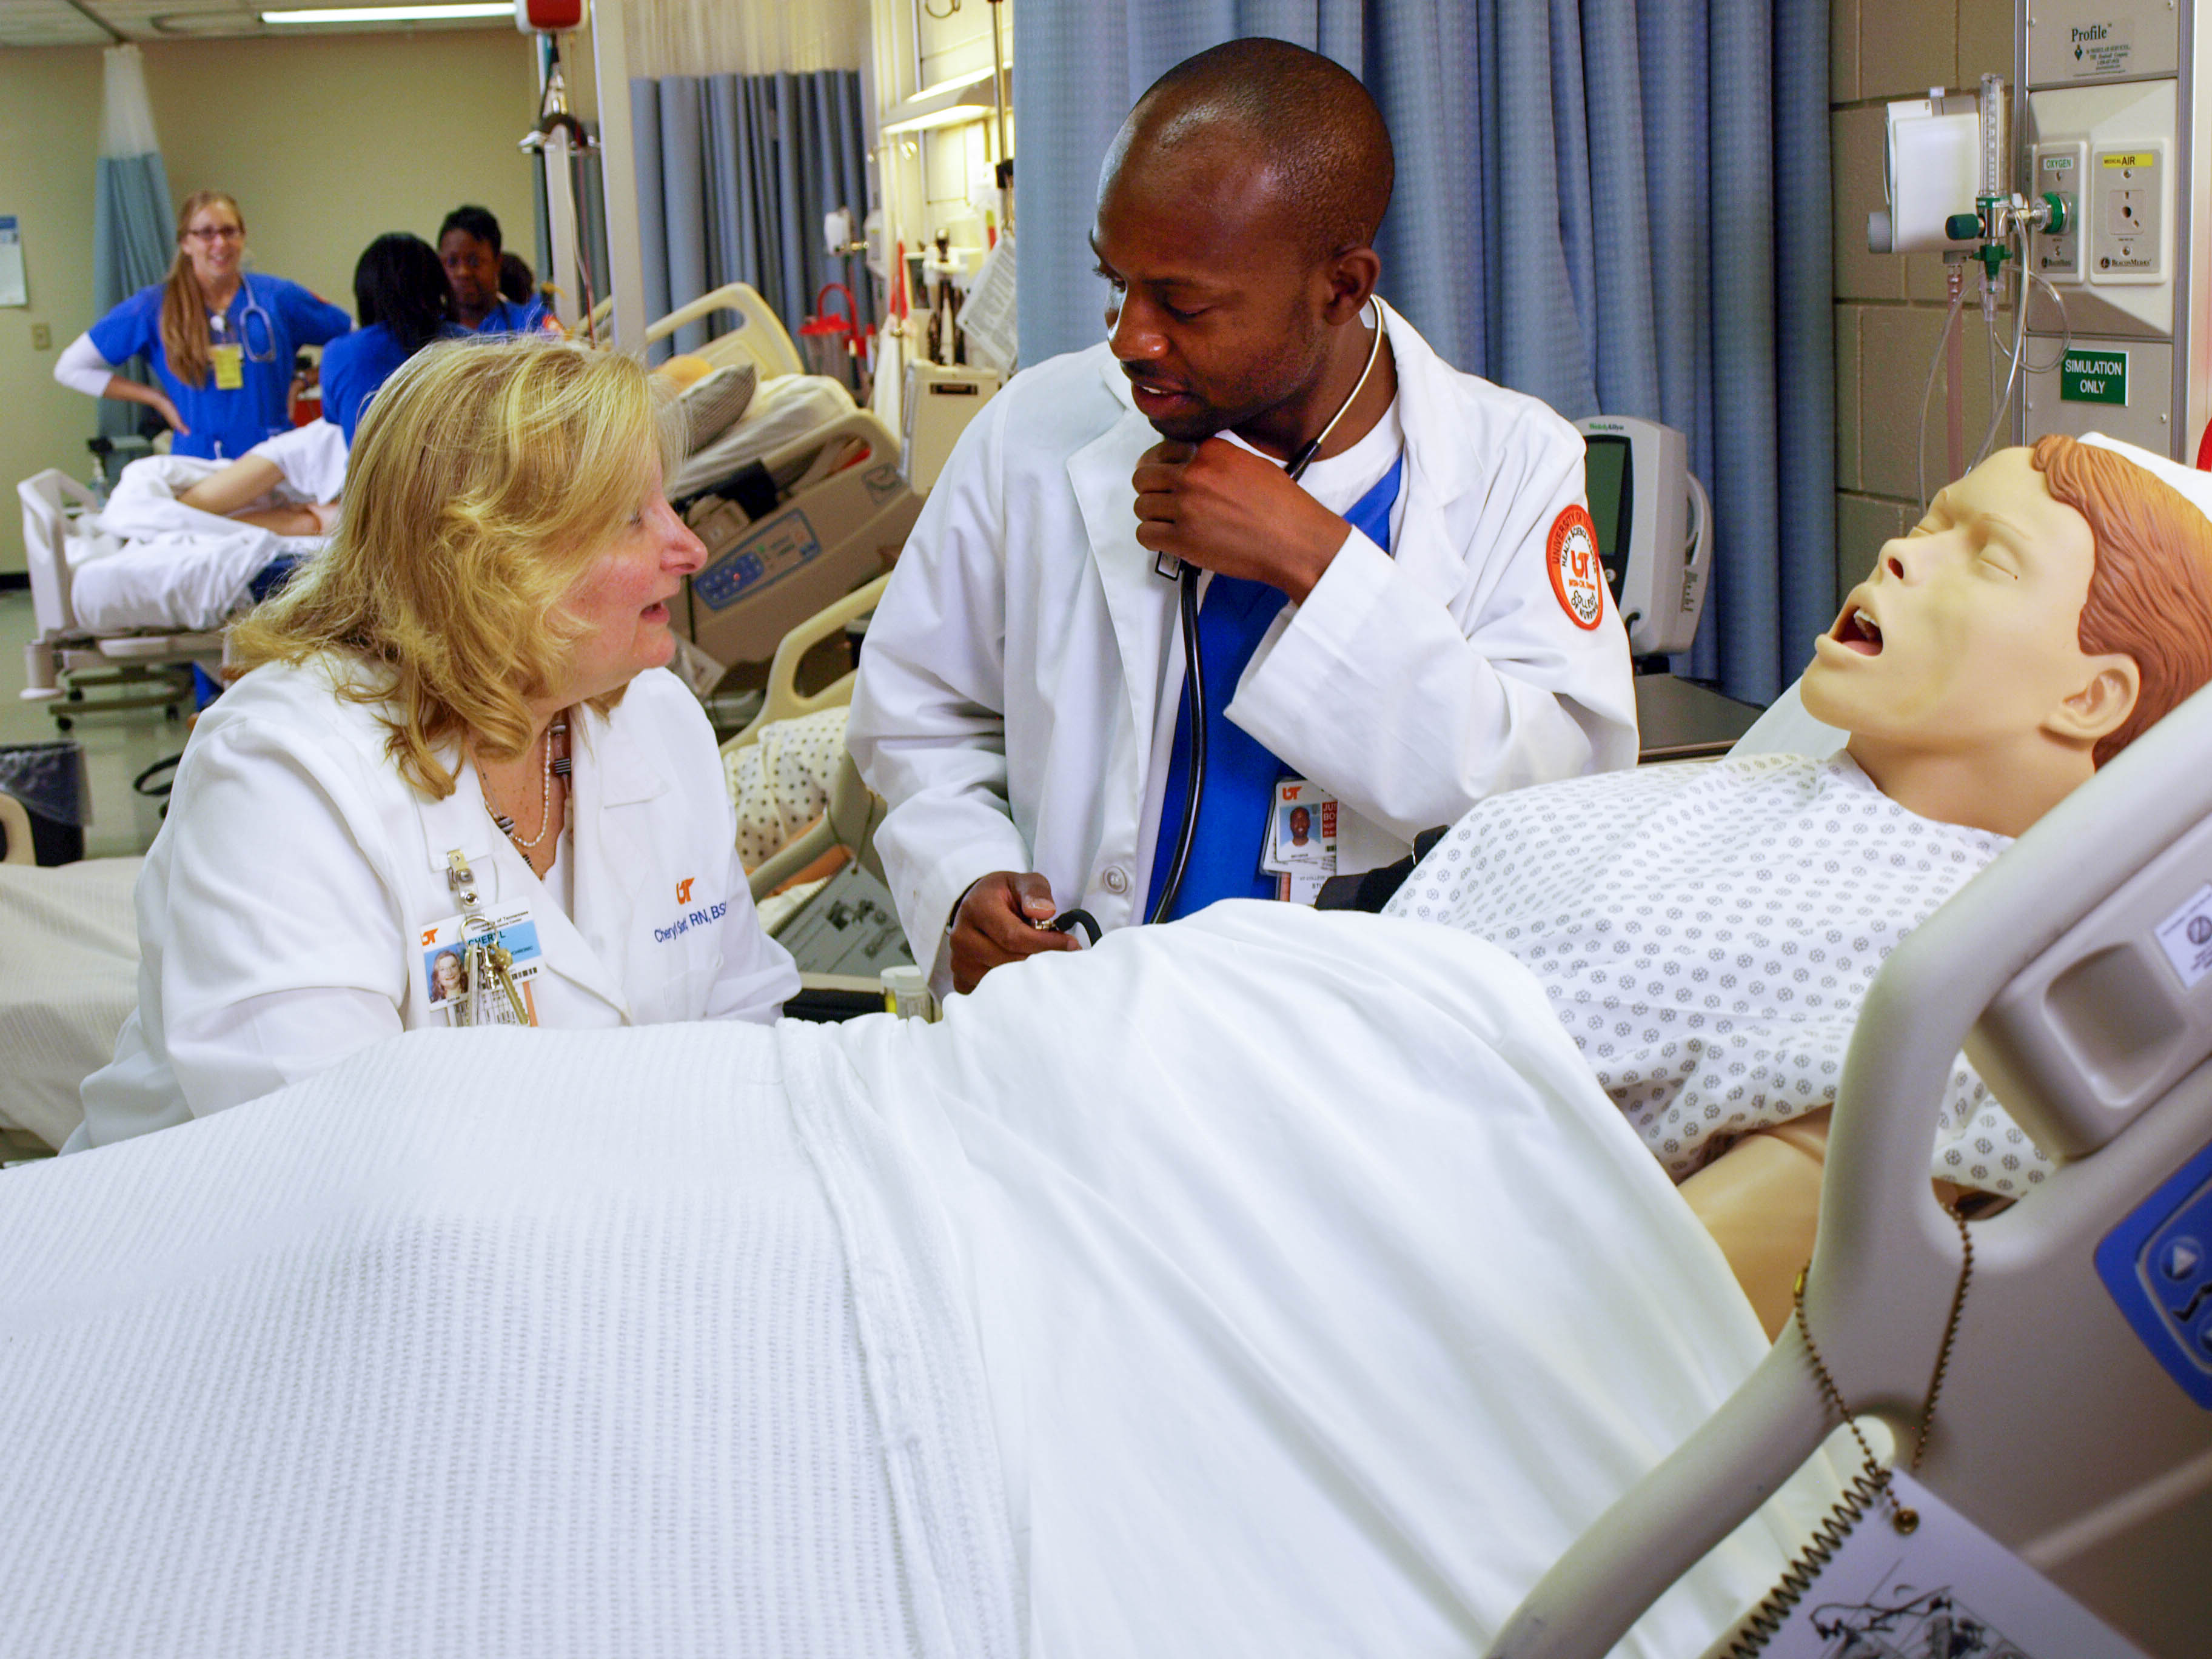 Nursing student receives instruction in simulation lab.